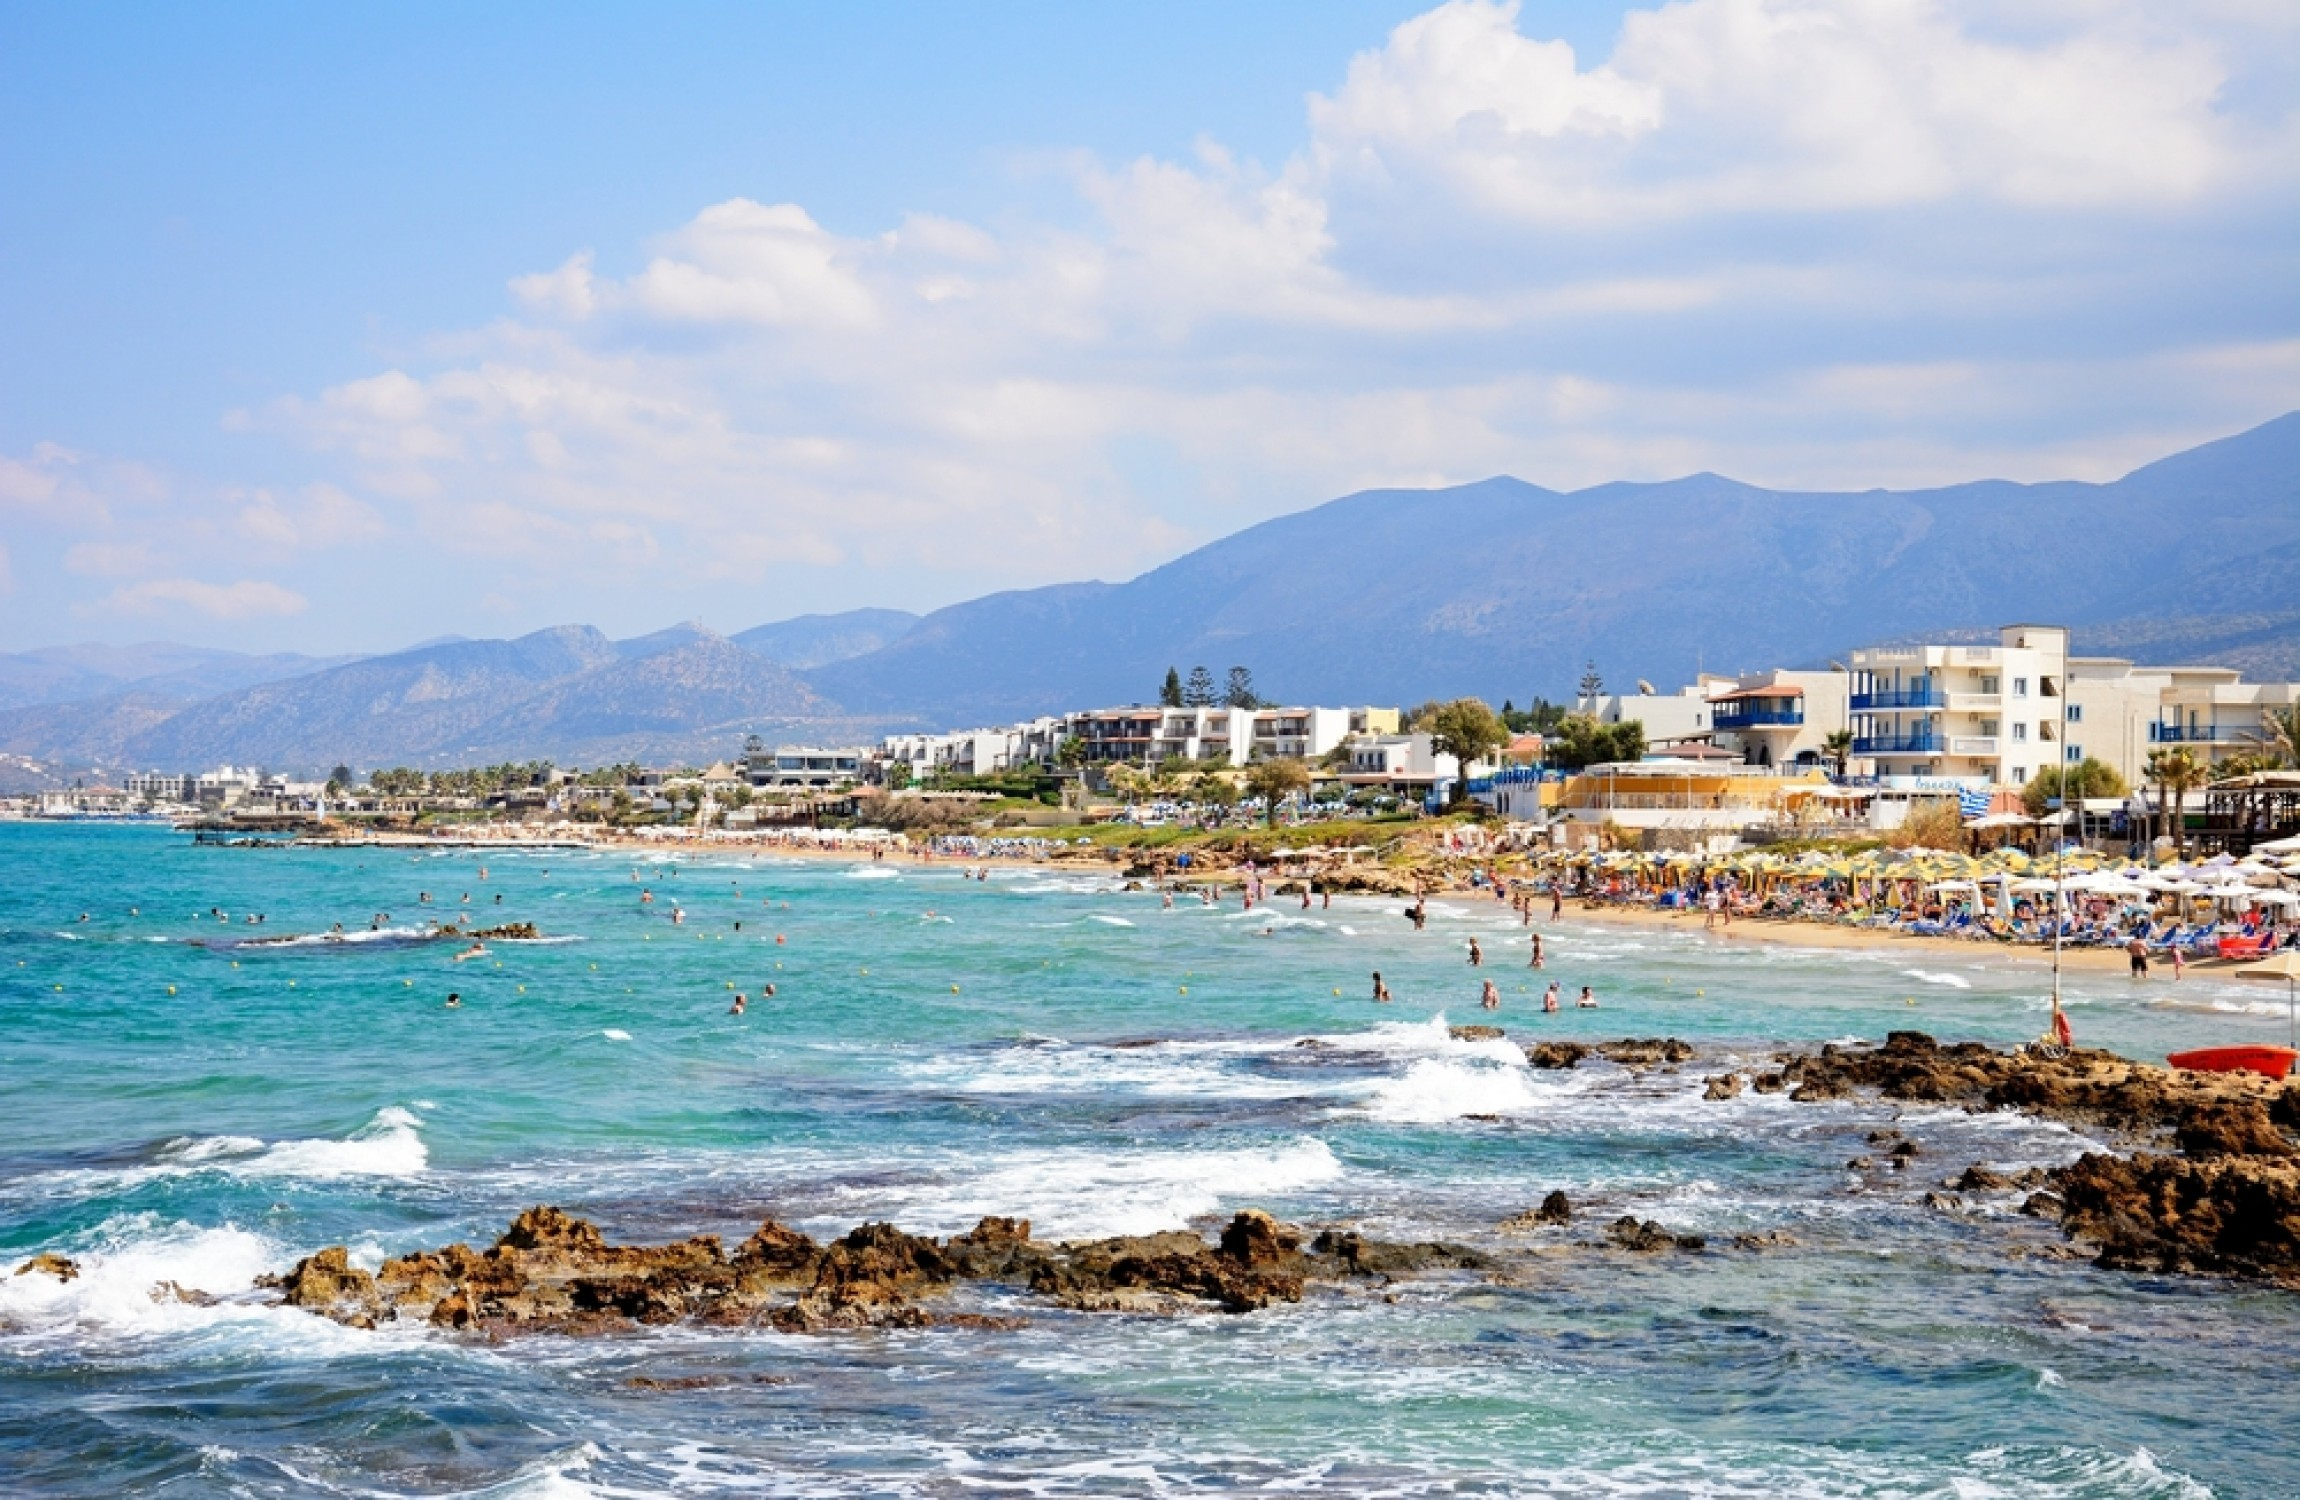 Irish girl (15) drowns in hotel swimming pool in Crete